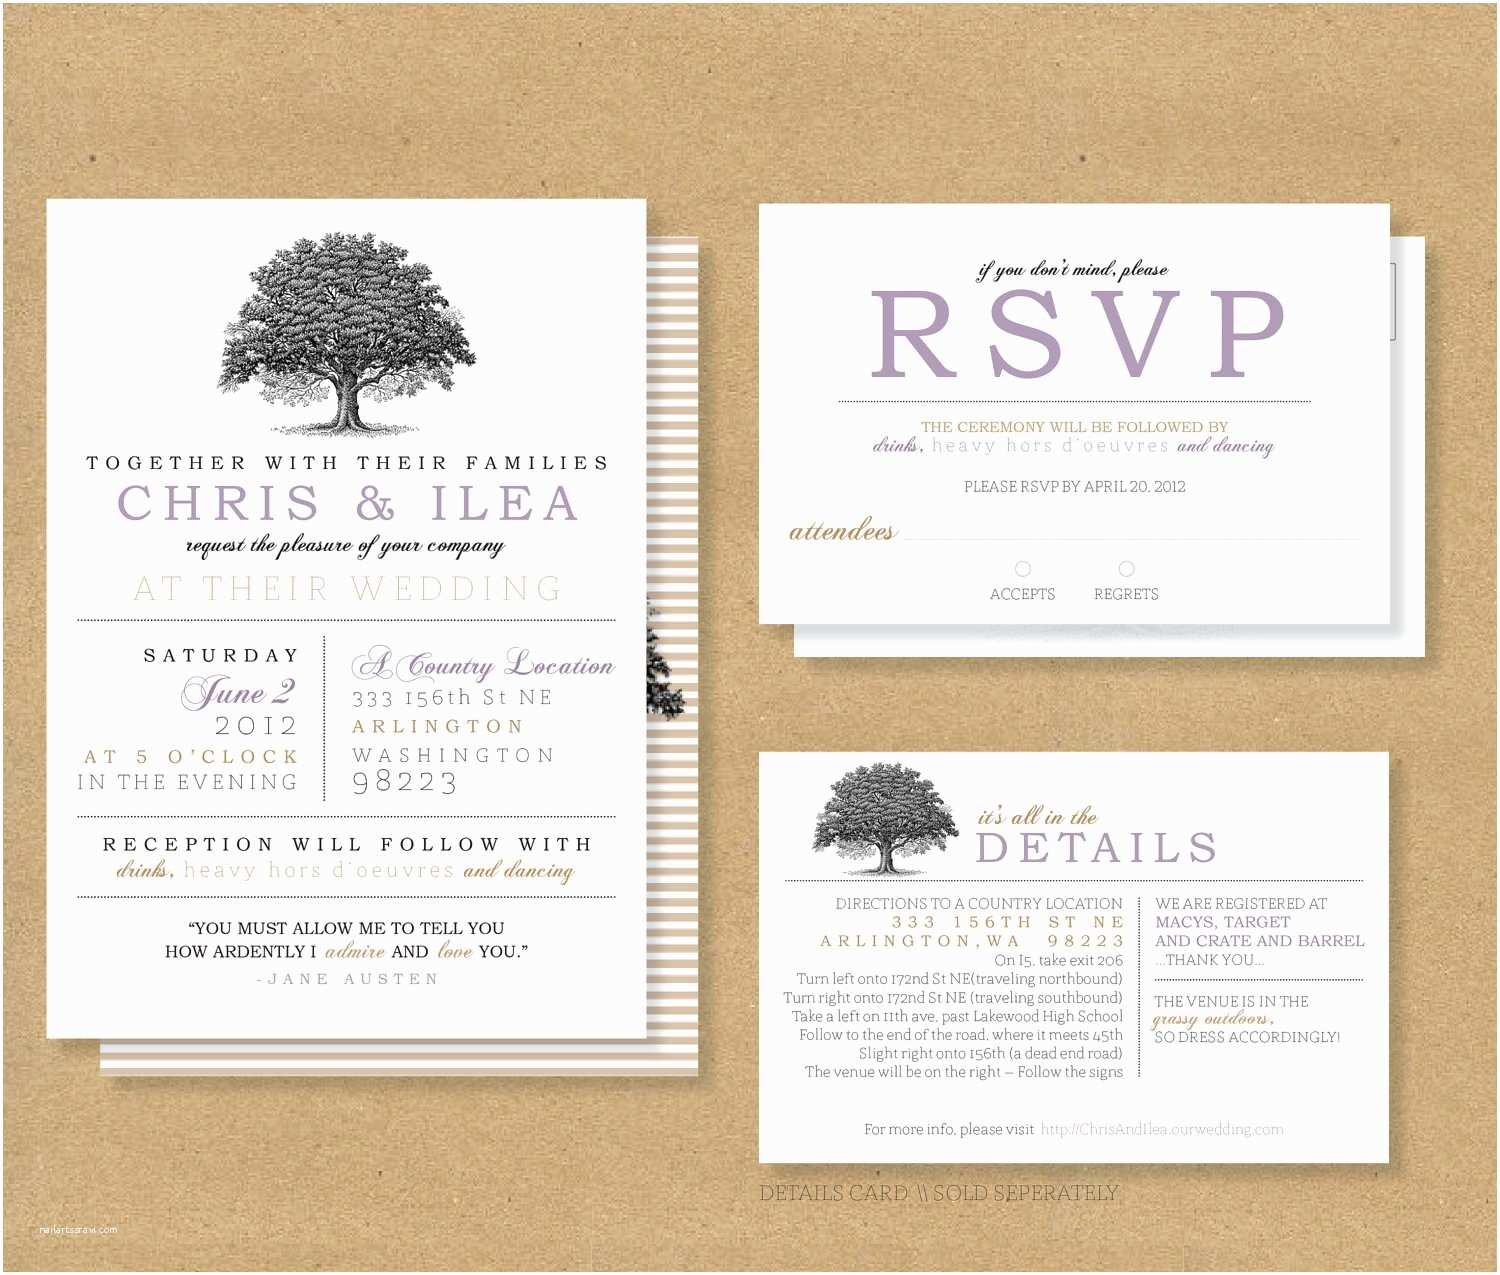 How to Rsvp for Wedding Invitation Wedding Invitations Rsvp